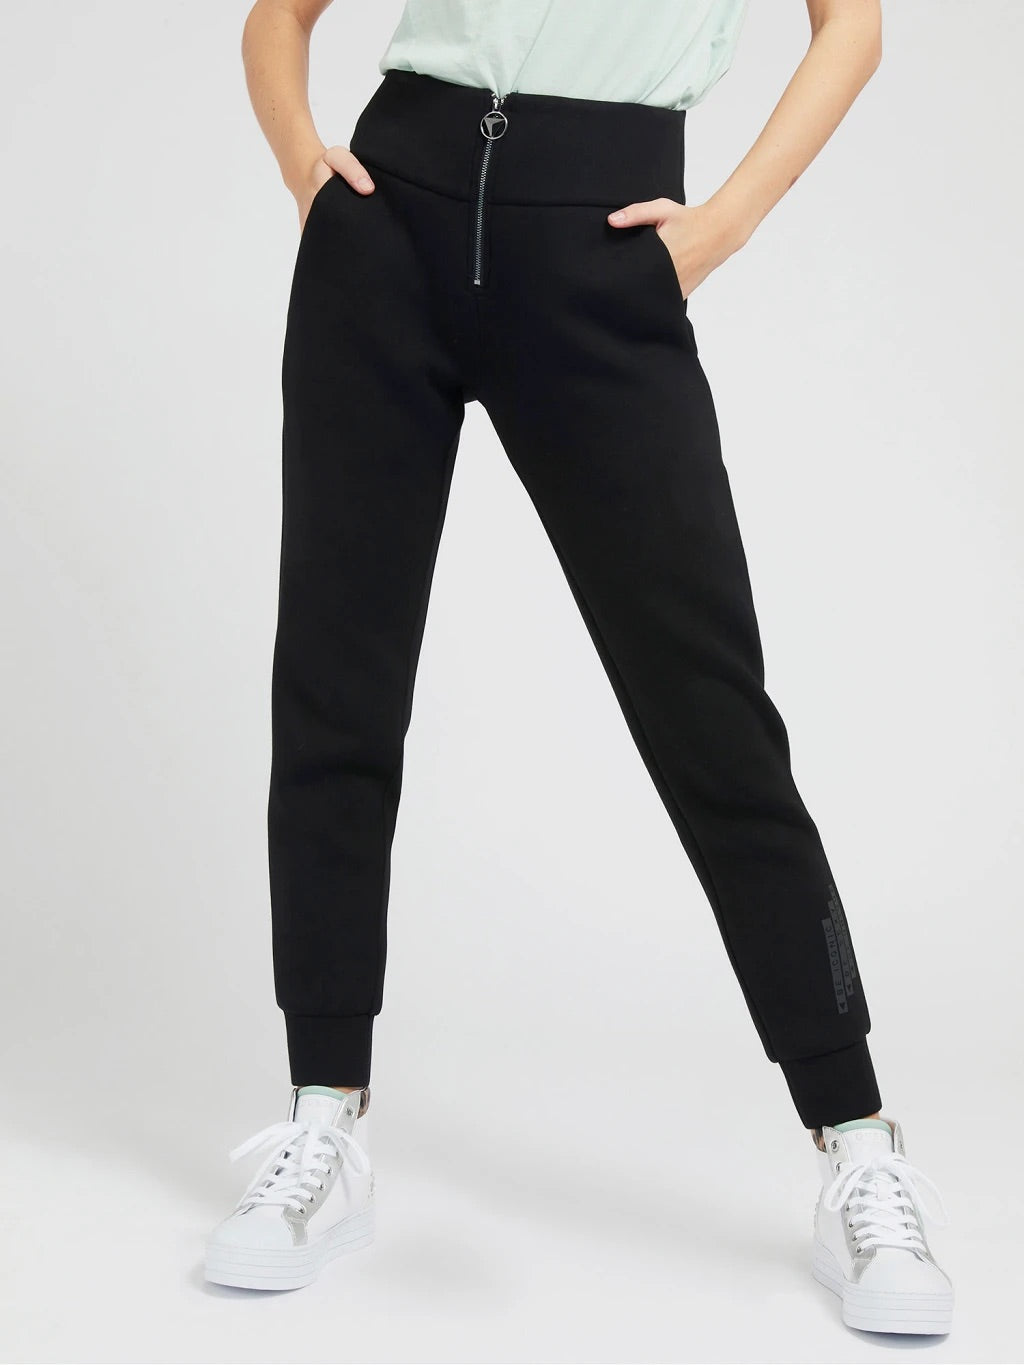 Huda zip guess scuba leggings